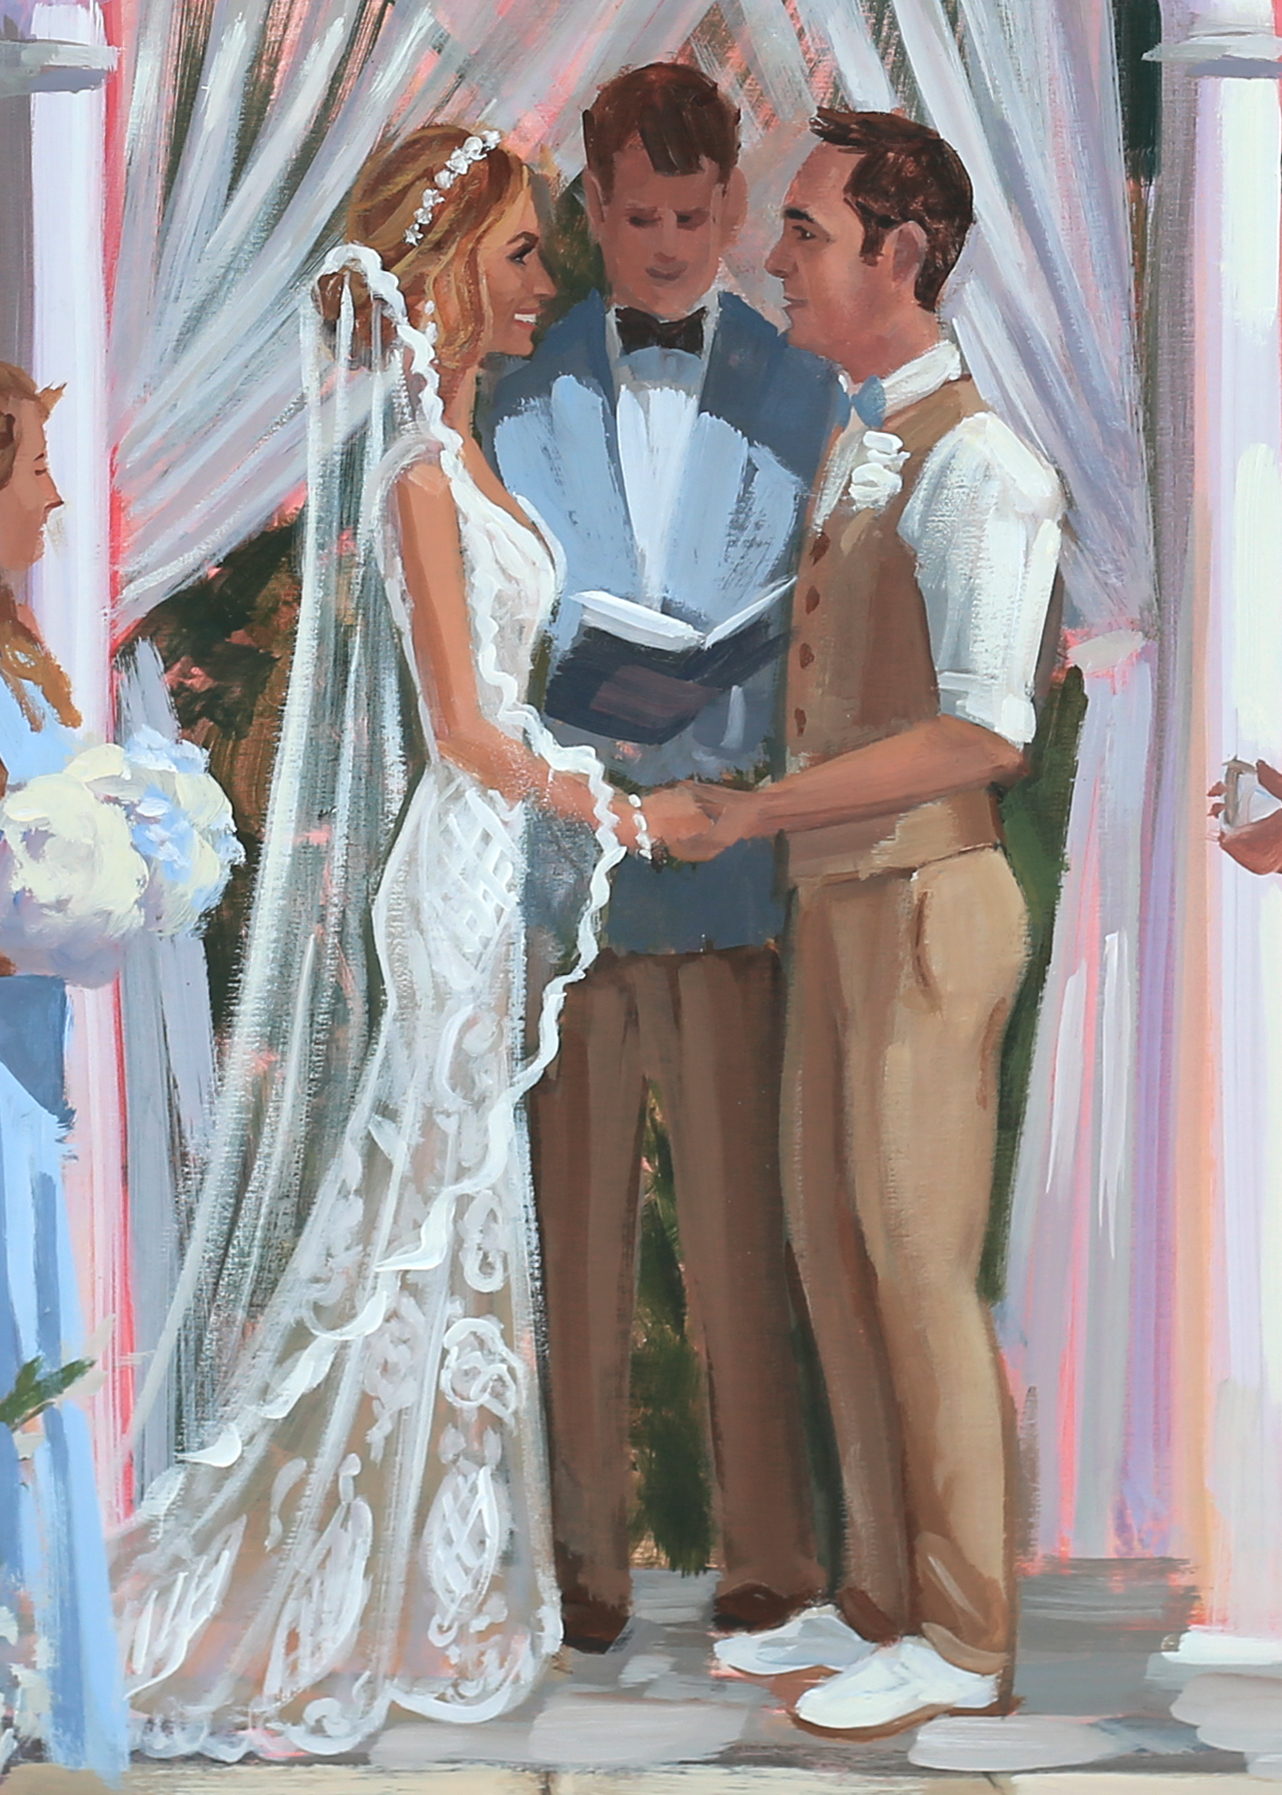 Close Up of the details from Megan + Joey's live wedding painting created at their ceremony at downtown Charleston's William Aiken House.